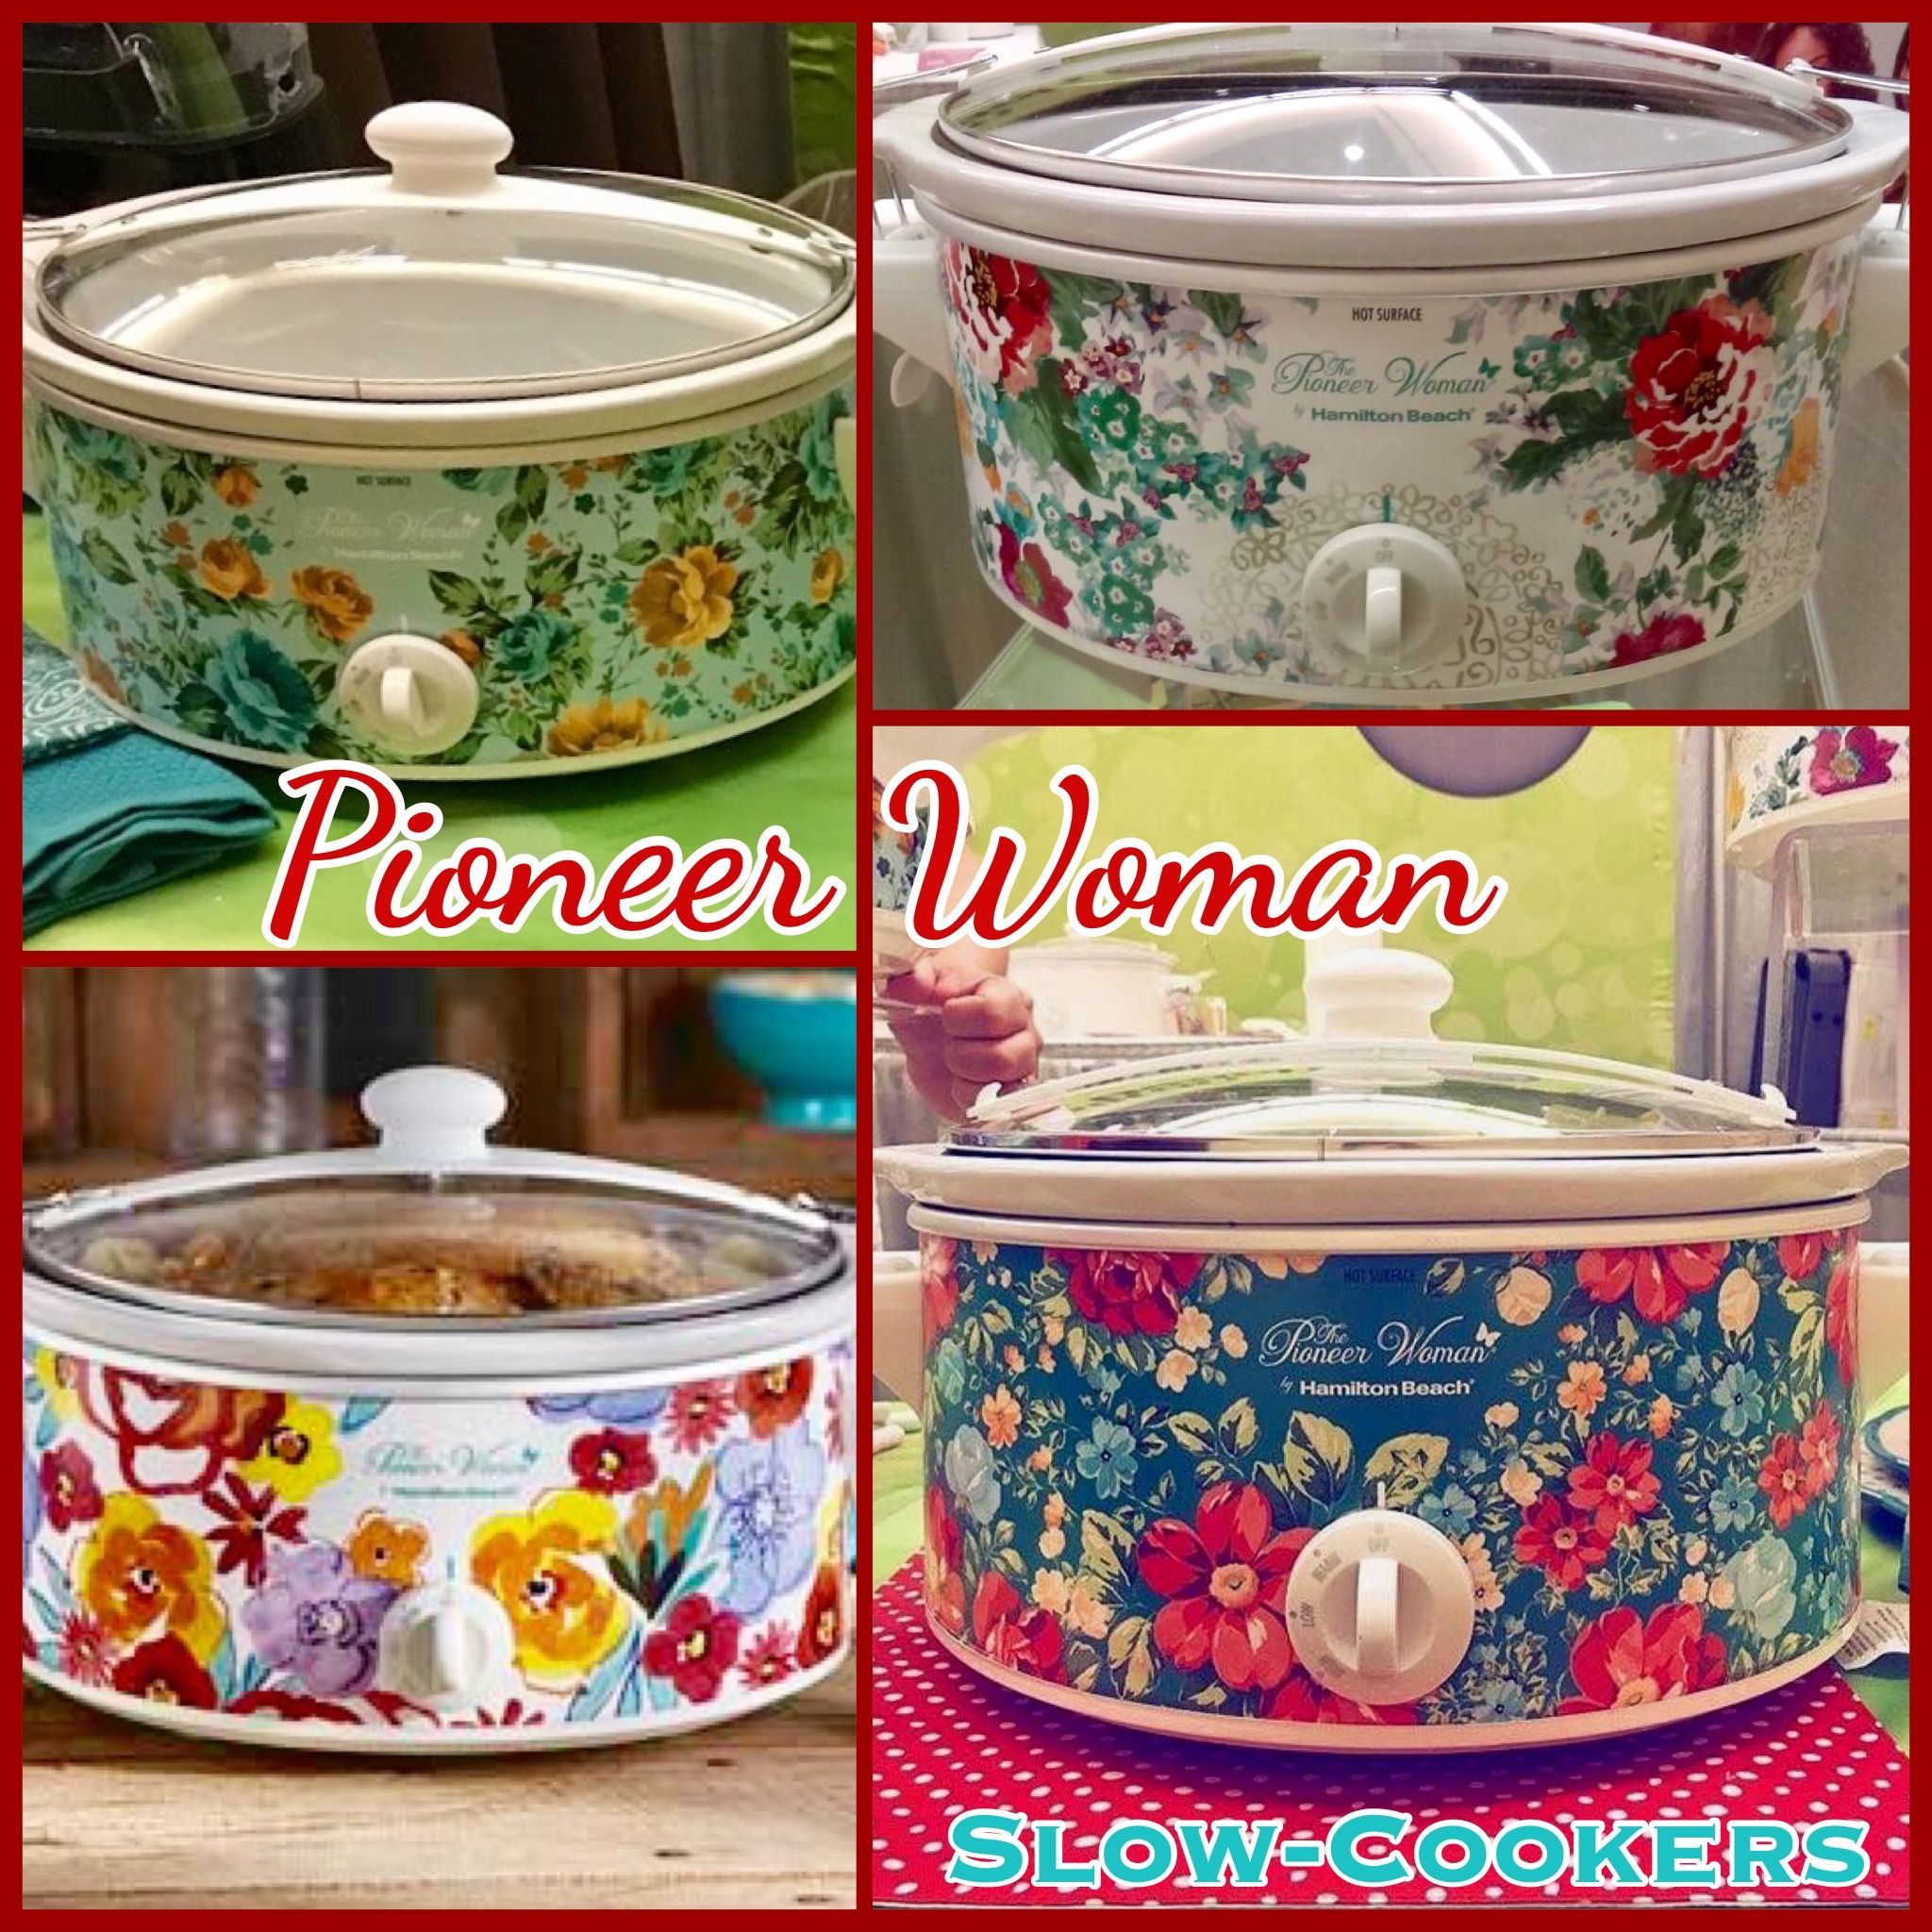 pioneer woman dishes walmart. pioneer woman slow cookers by hamilton beach fall 2017 @ walmart dishes t